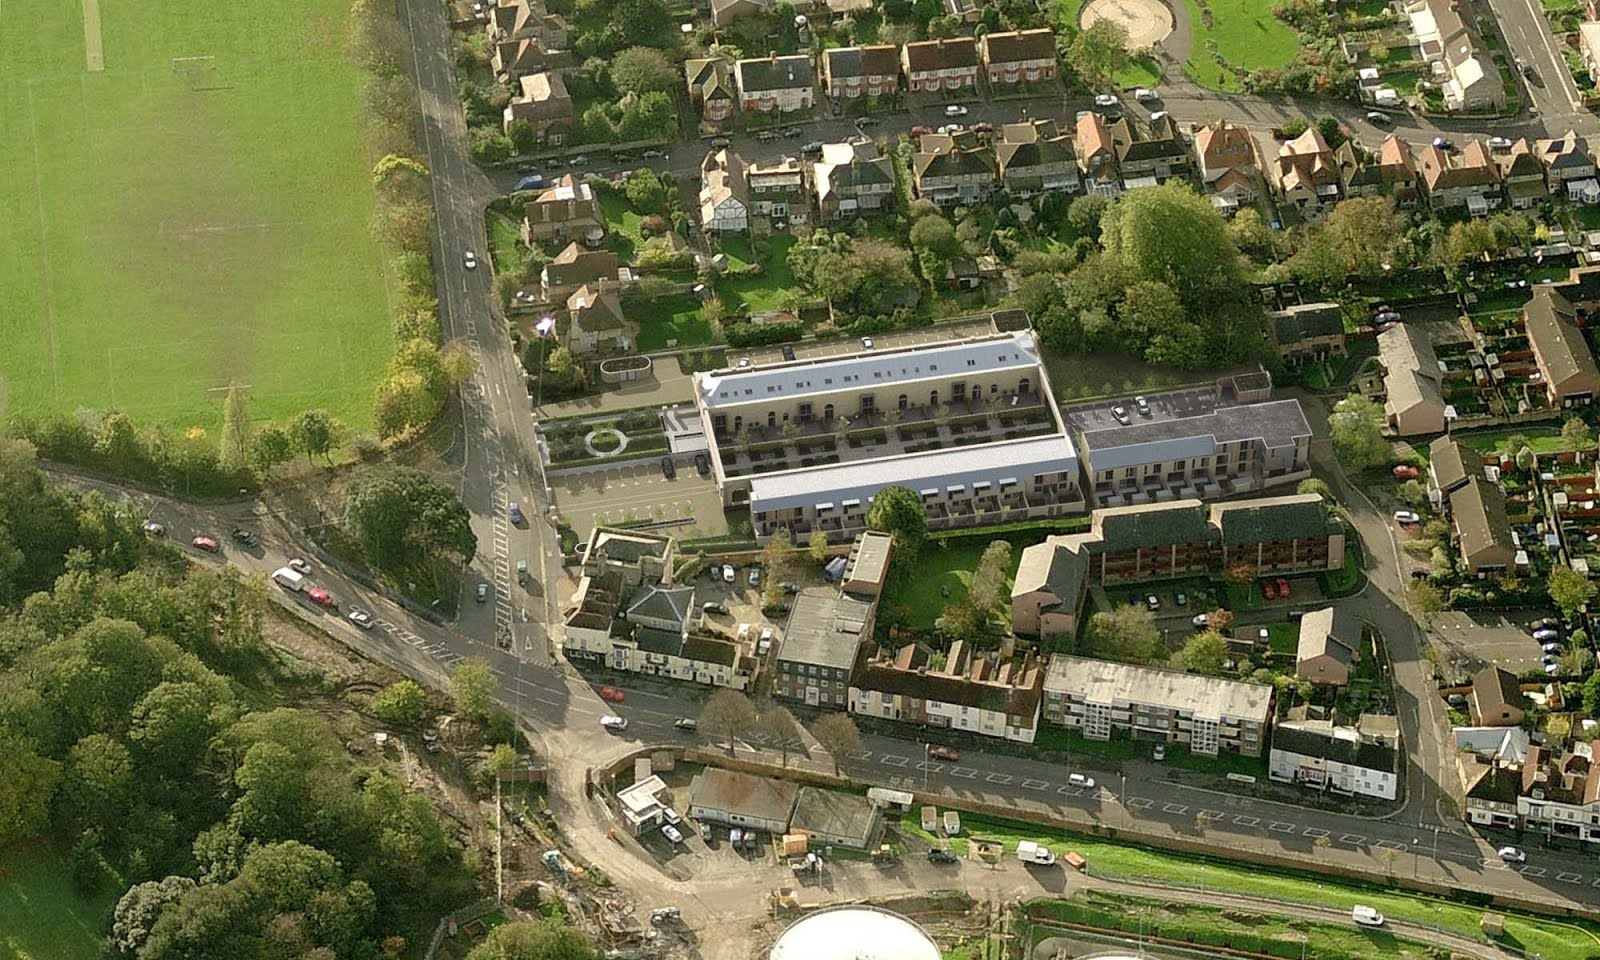 Gosport station restored from the air